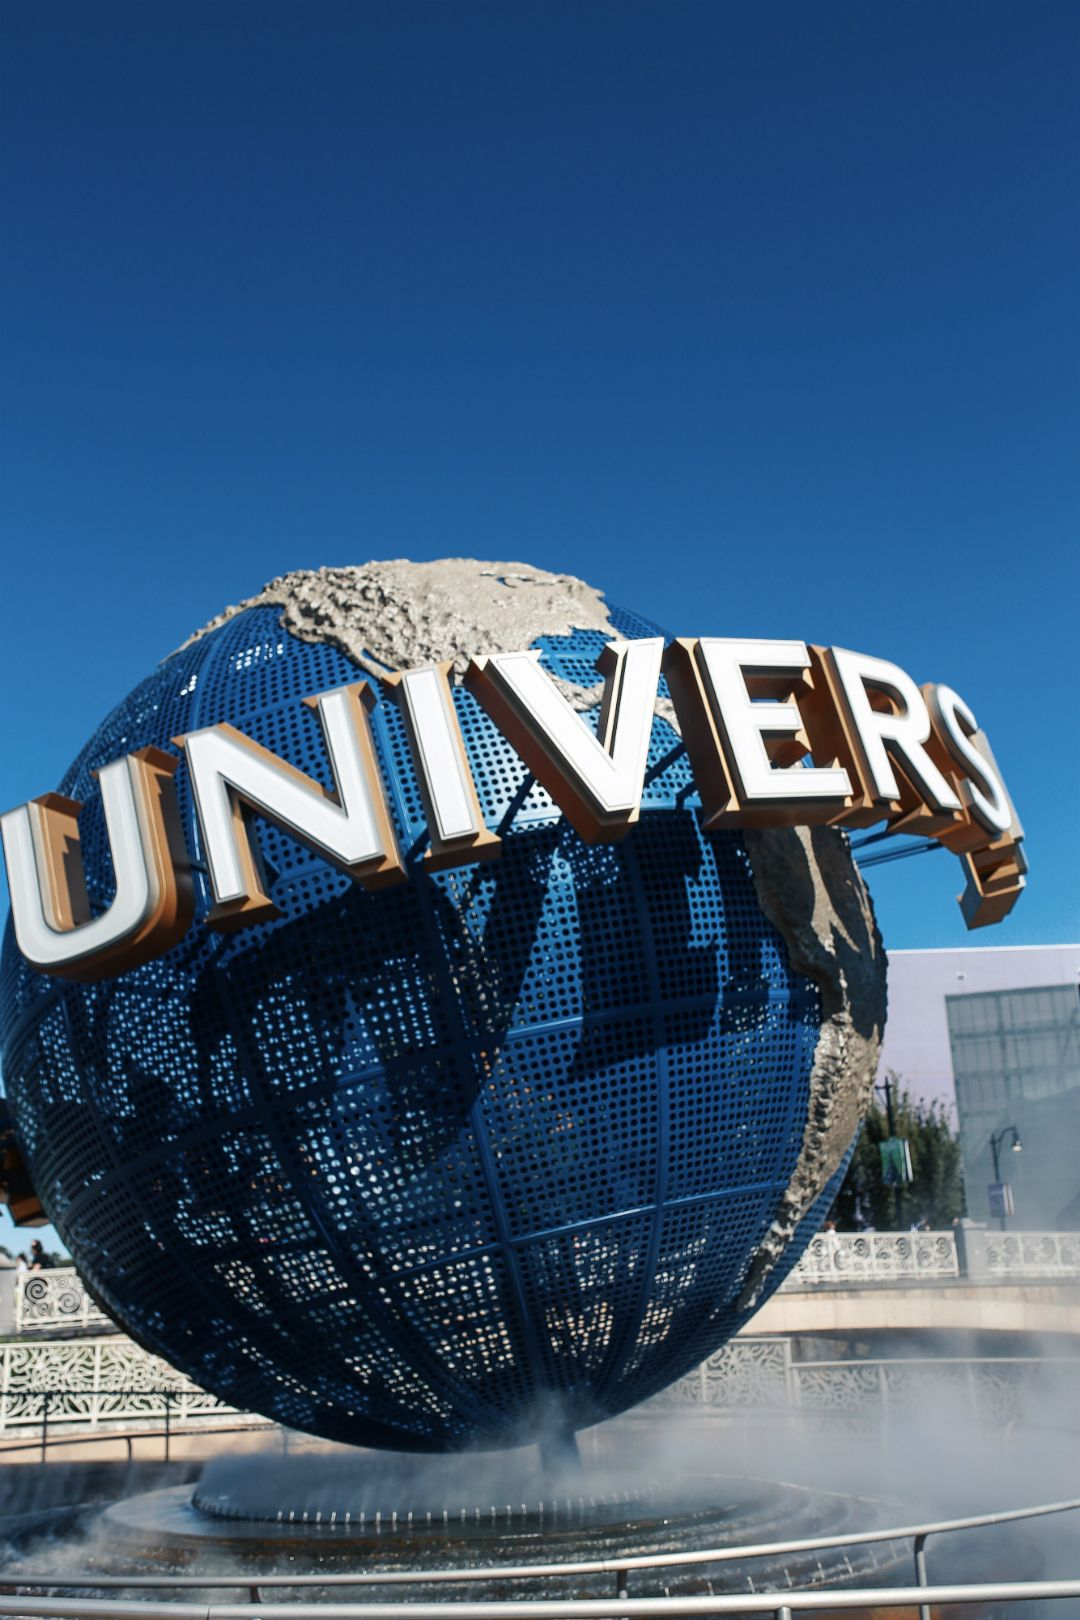 Stress Less With Universal S Express Pass The House Of Sequins Chicago Aesthetic Universal Studios Orlando Aesthetic Pictures